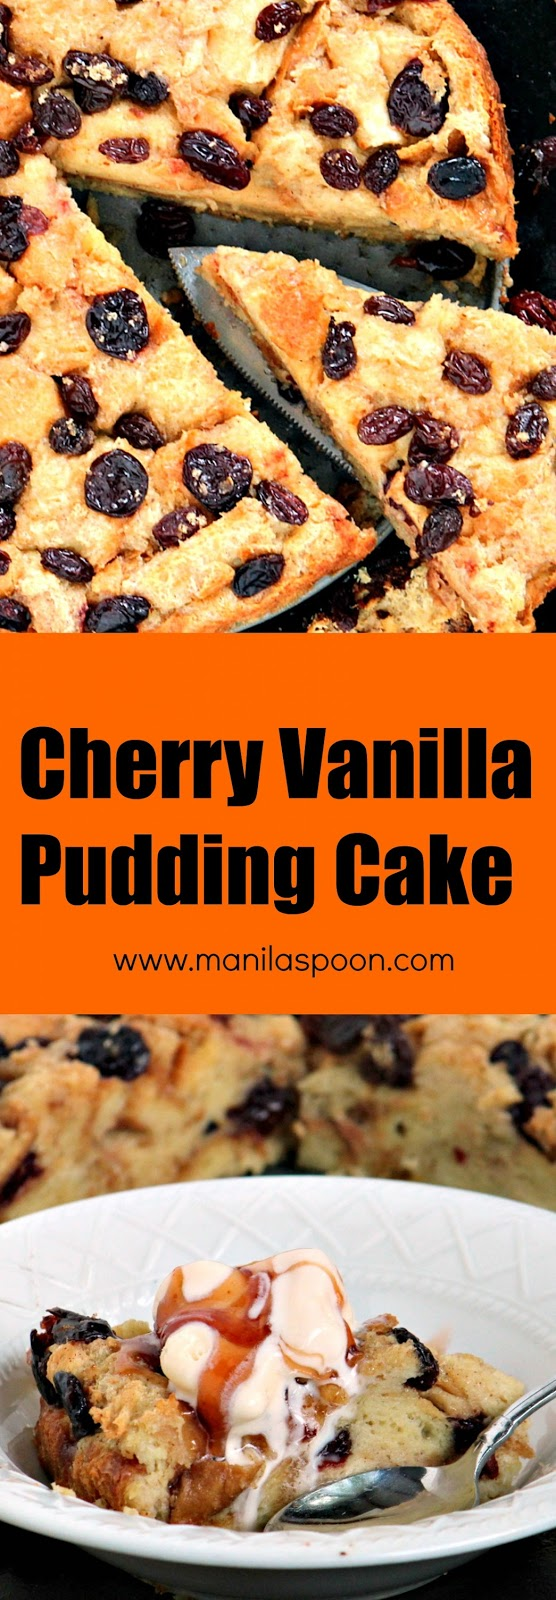 Utterly buttery and loaded with fruits, this vanilla-flavored bread pudding cake is the yummiest breakfast or brunch treat! Use cherries, cranberries or your favorite dried berries to personalize it.